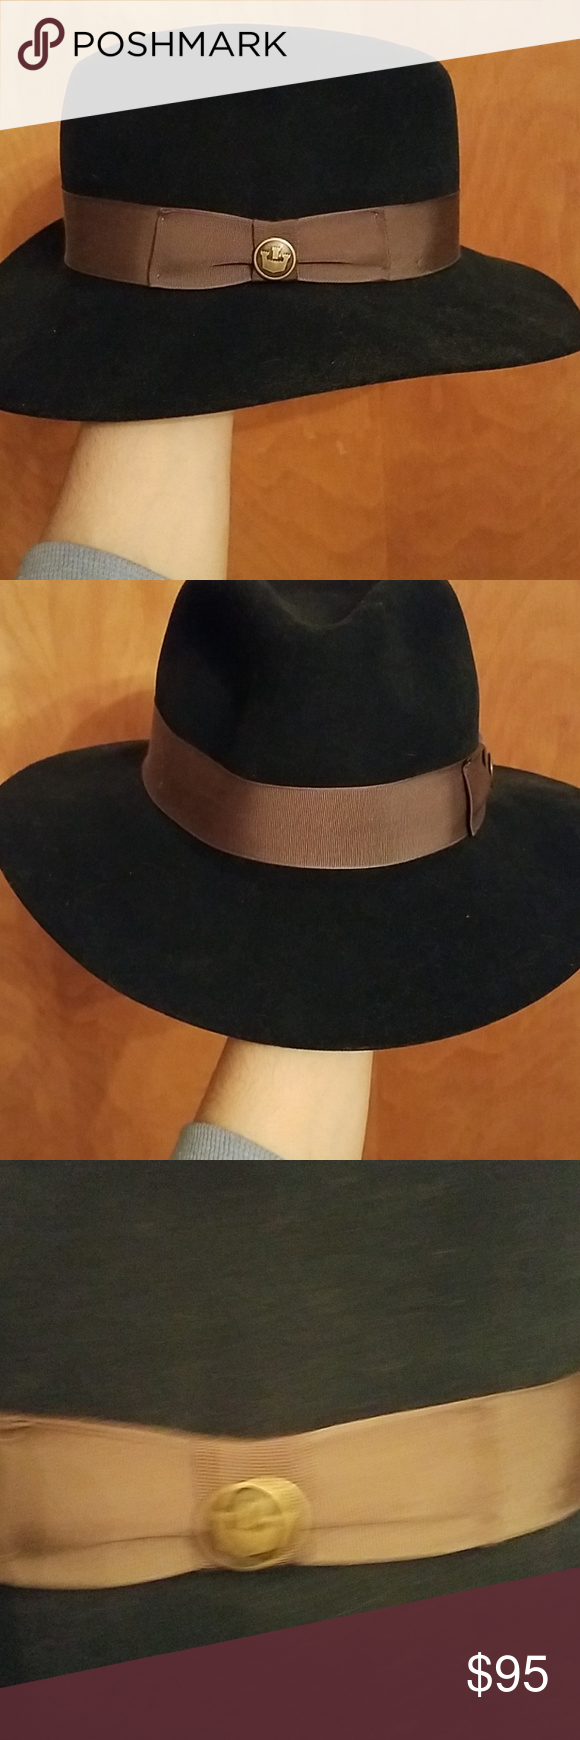 019778c708dbc Goorin Bros county line fedora hat medium GOORIN BROS county line fedora hat  size medium blue teal color goorin Bros Accessories Hats